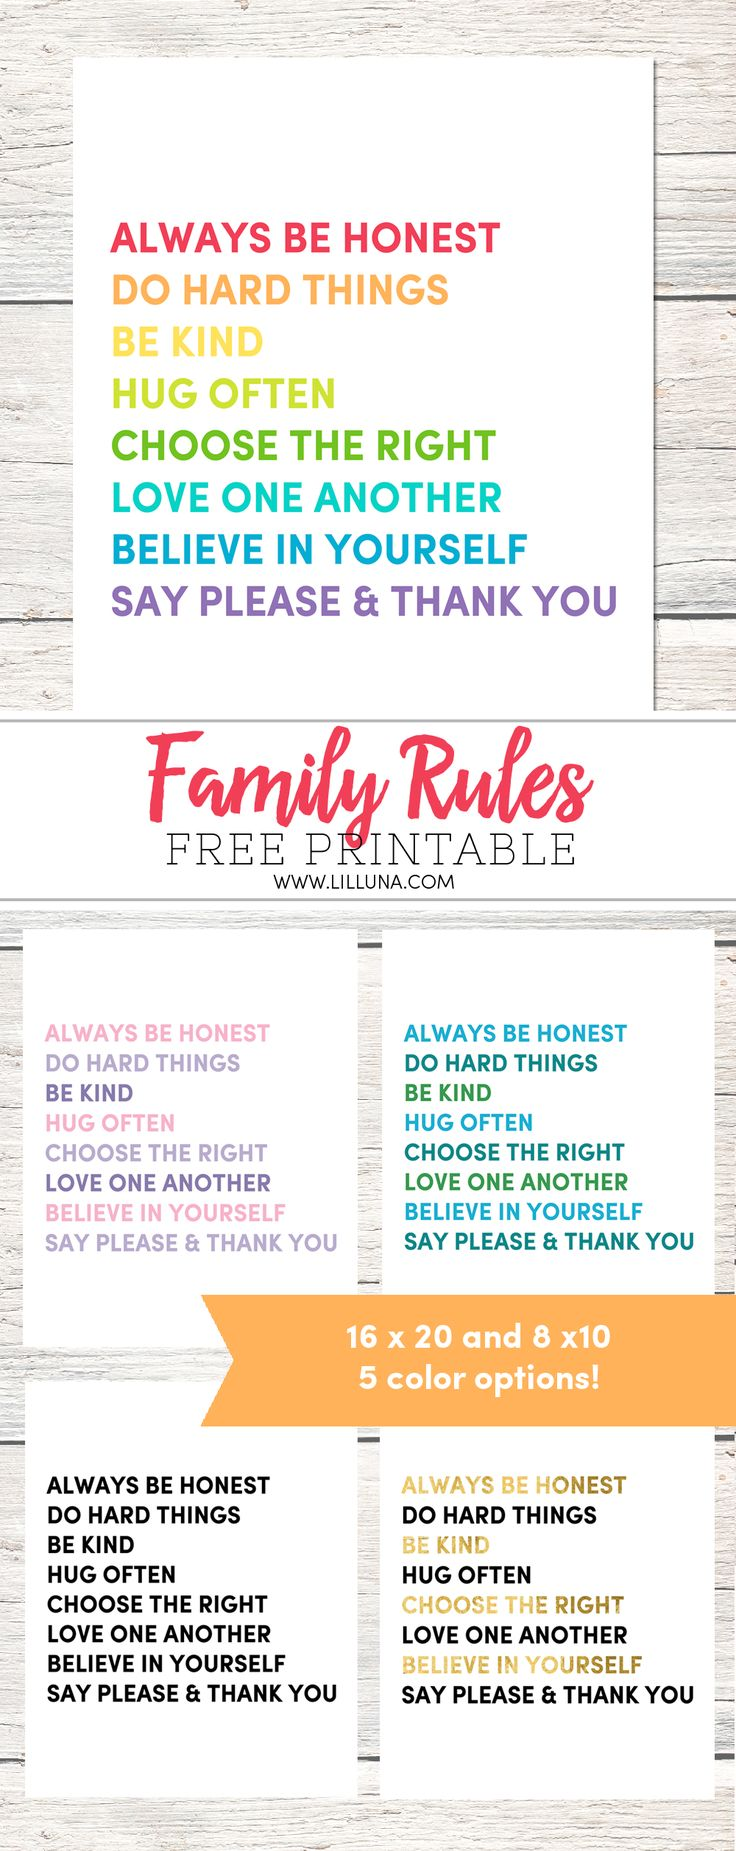 FREE Family Rules Printable available to print and download in 5 colors. Perfect to display in your home, especially in a playroom!